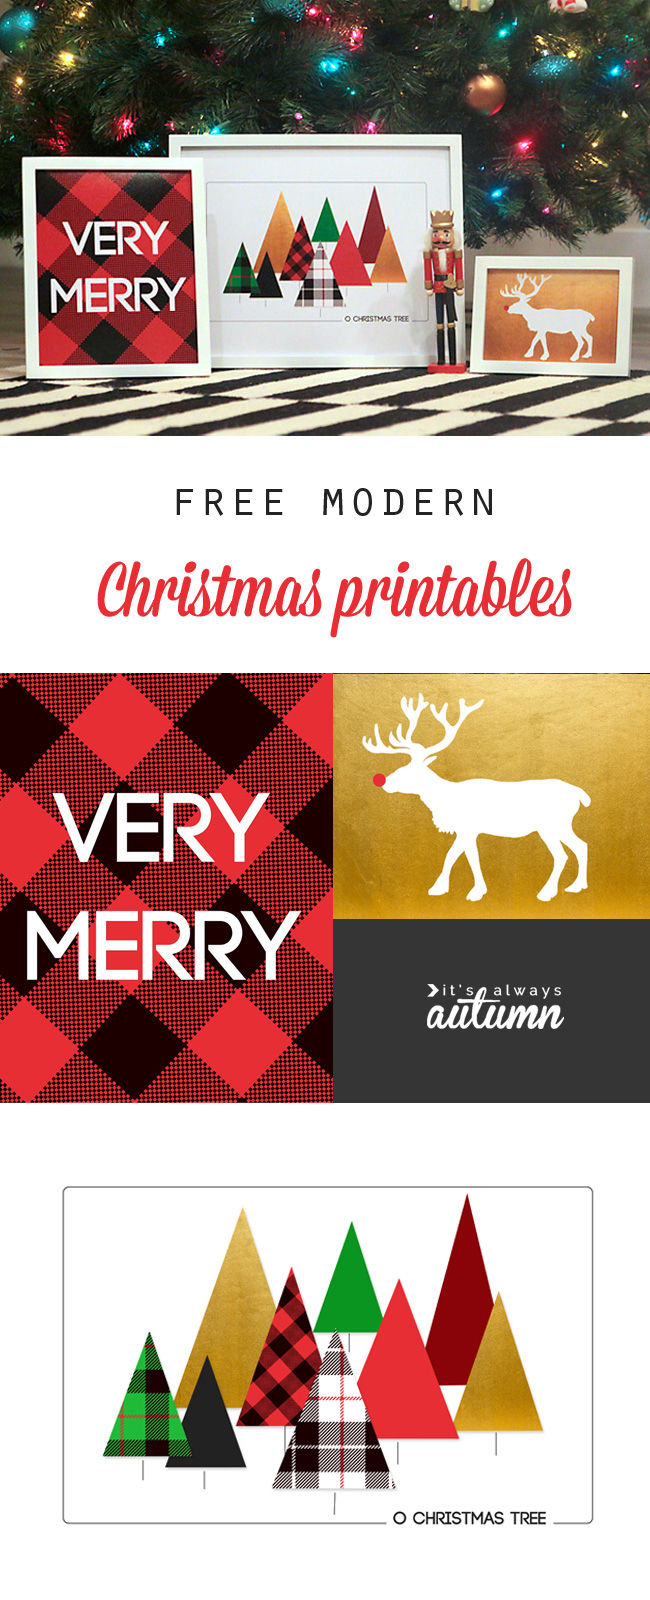 Modern Christmas printables - free Christmas prints and wall art for your home!